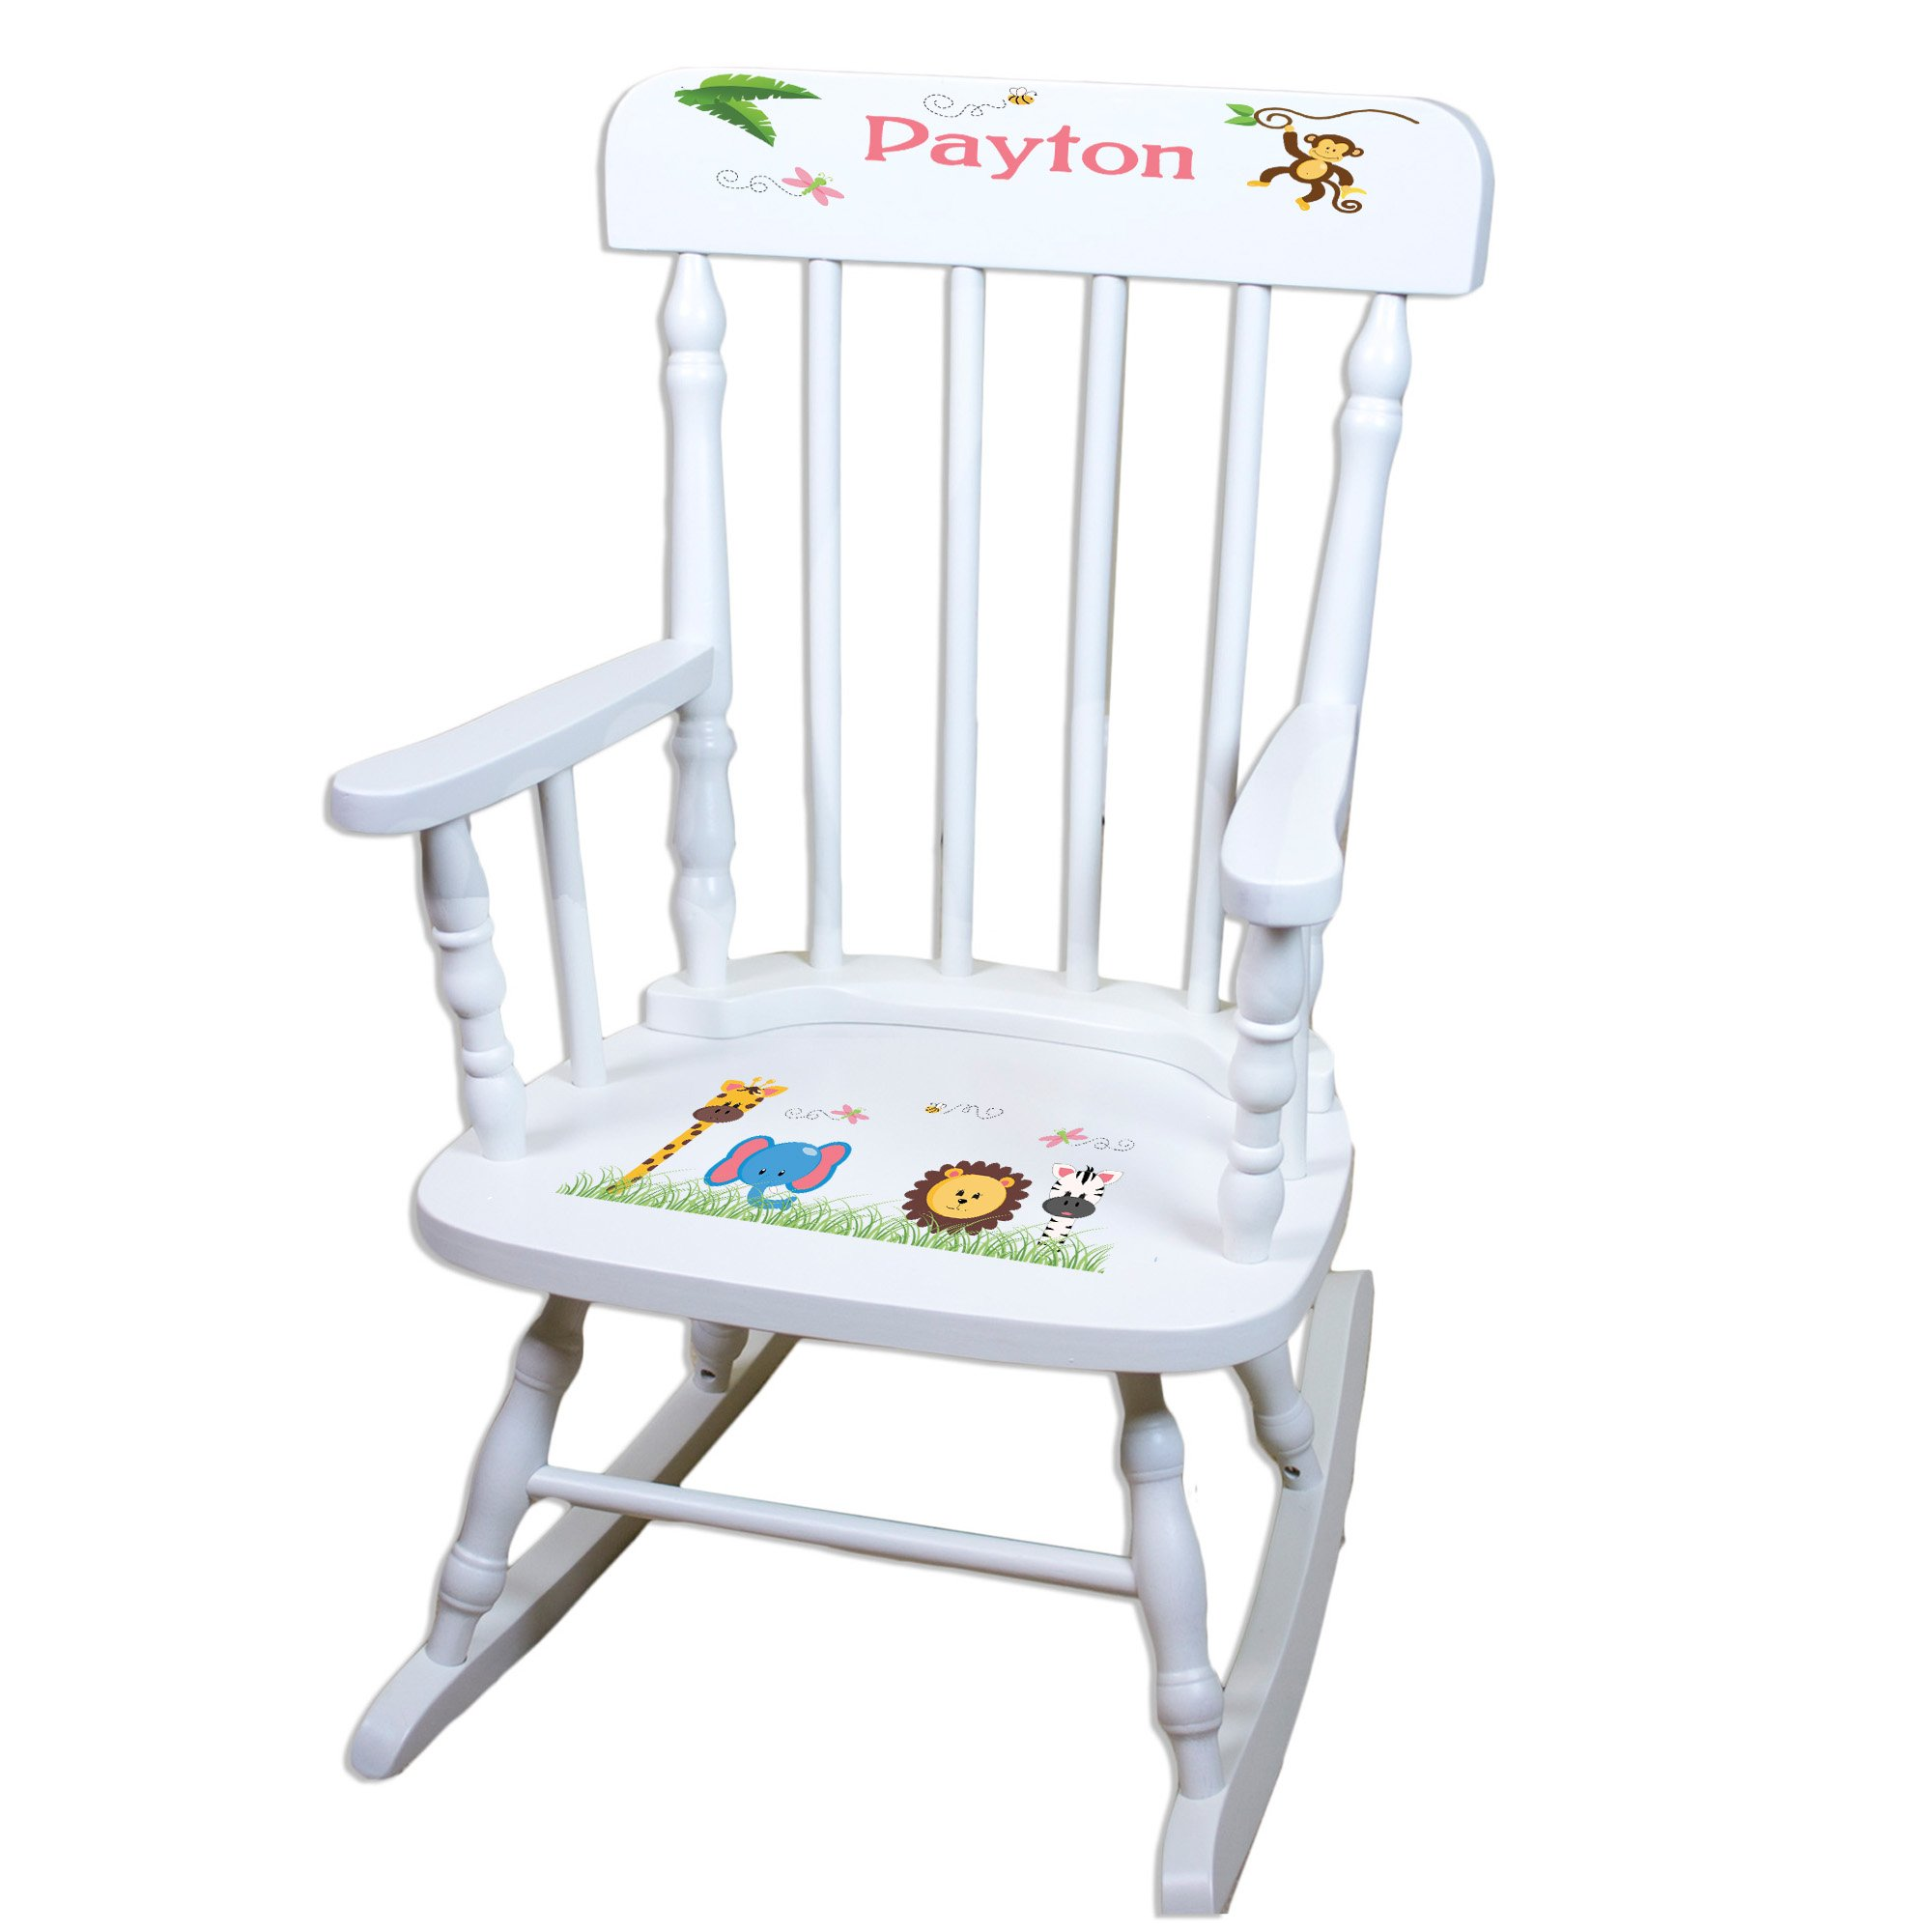 MyBambino Personalized White Spindle Rocking Chair with Jungle Animals Girl design design